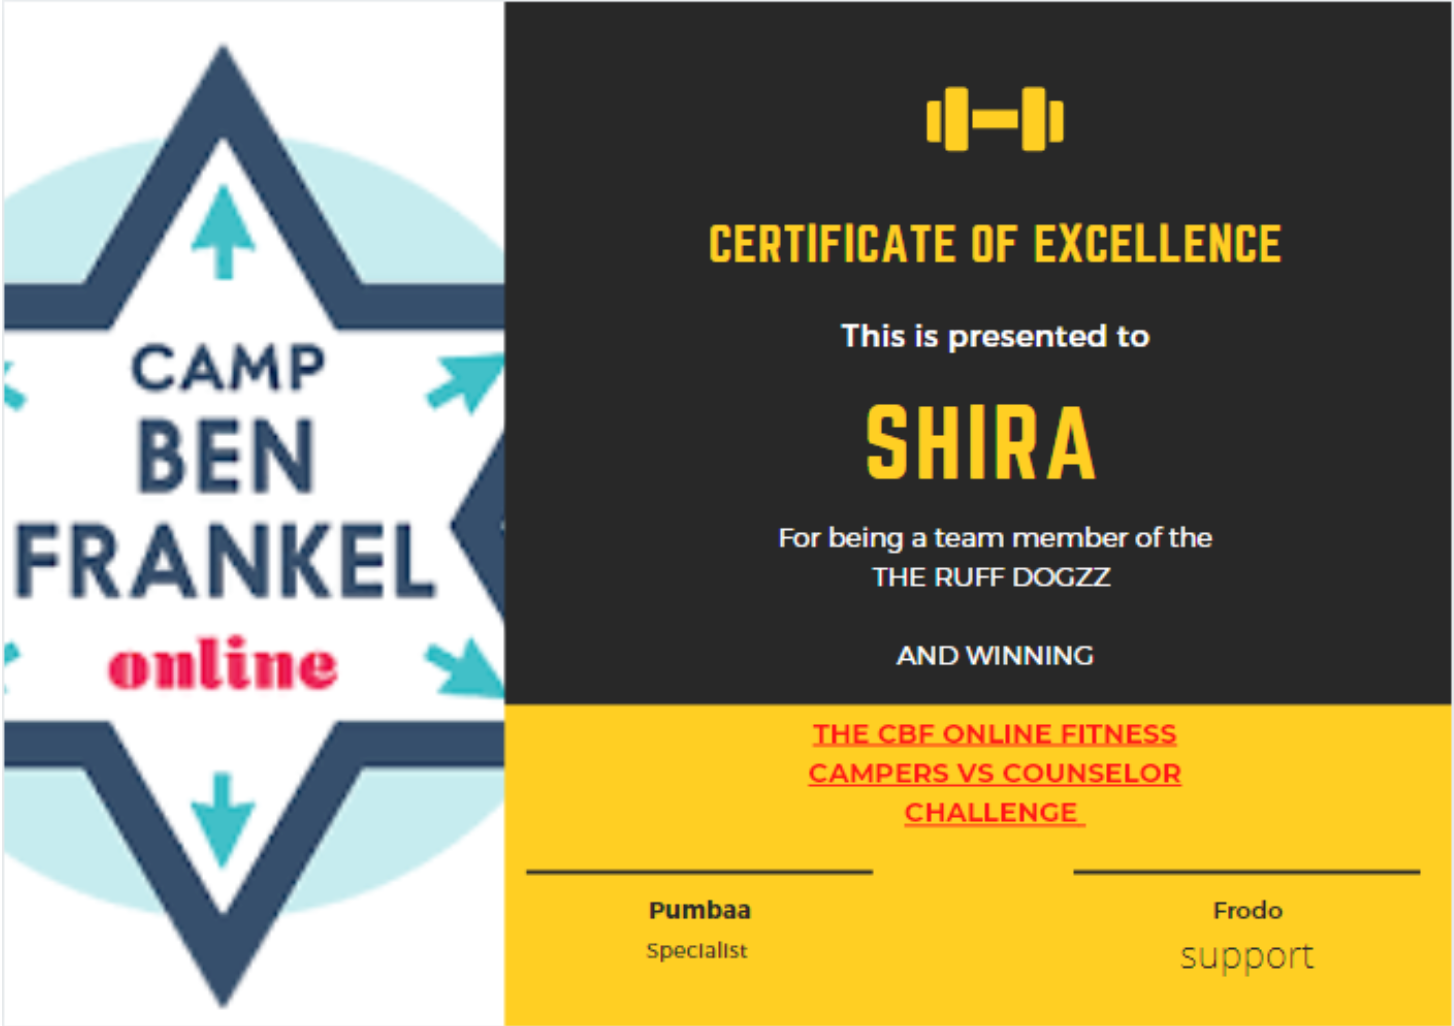 Shira - Certificate of Excellence